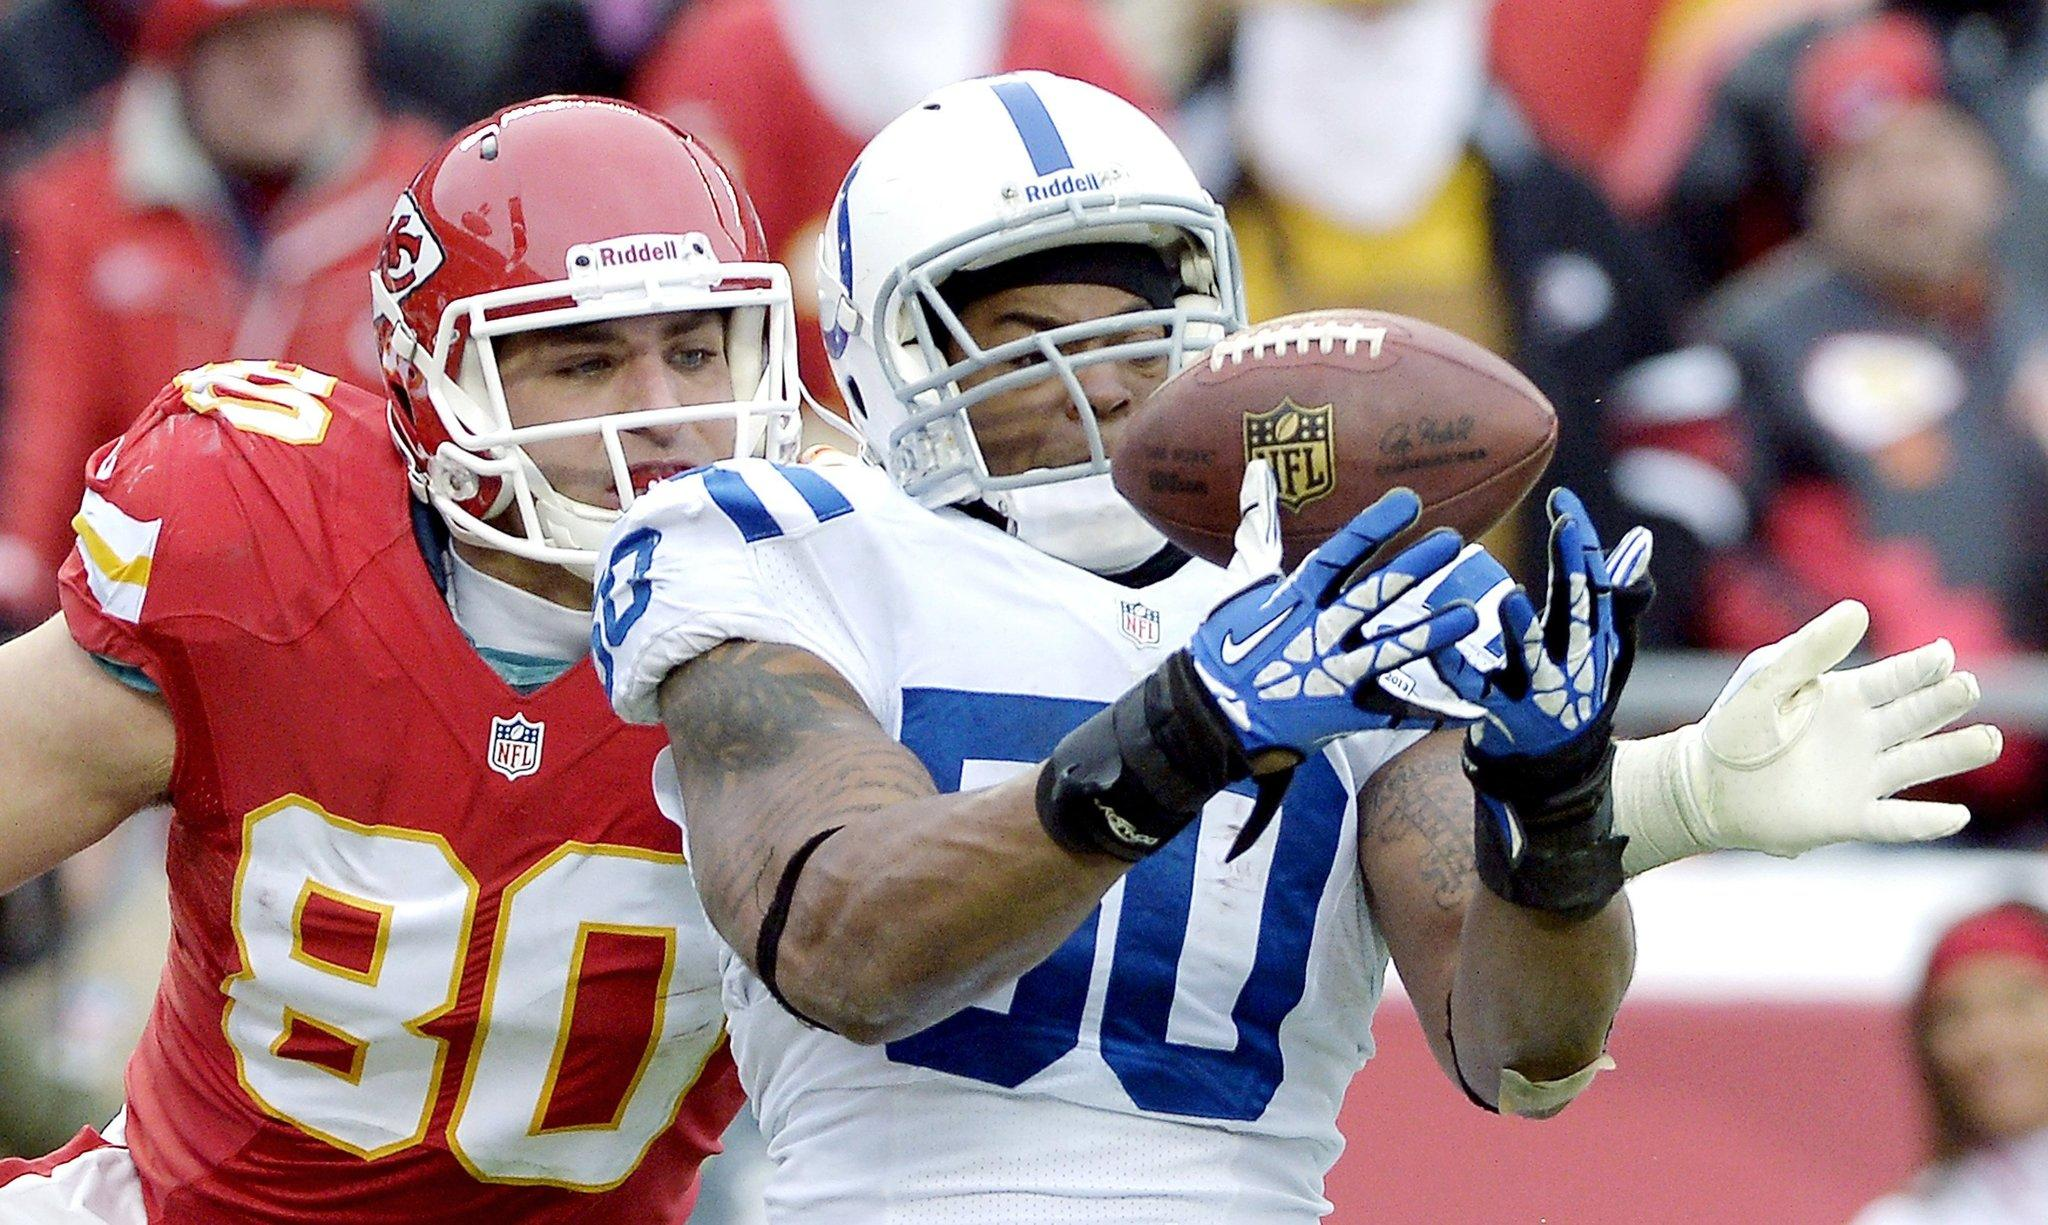 Colts linebacker Jerrell Freeman intercepts a pass in the end zone intended for Chiefs tight end Anthony Fasano (80) in the fourth quarter of their game earlier this month at Arrowhead Stadium in Kansas City